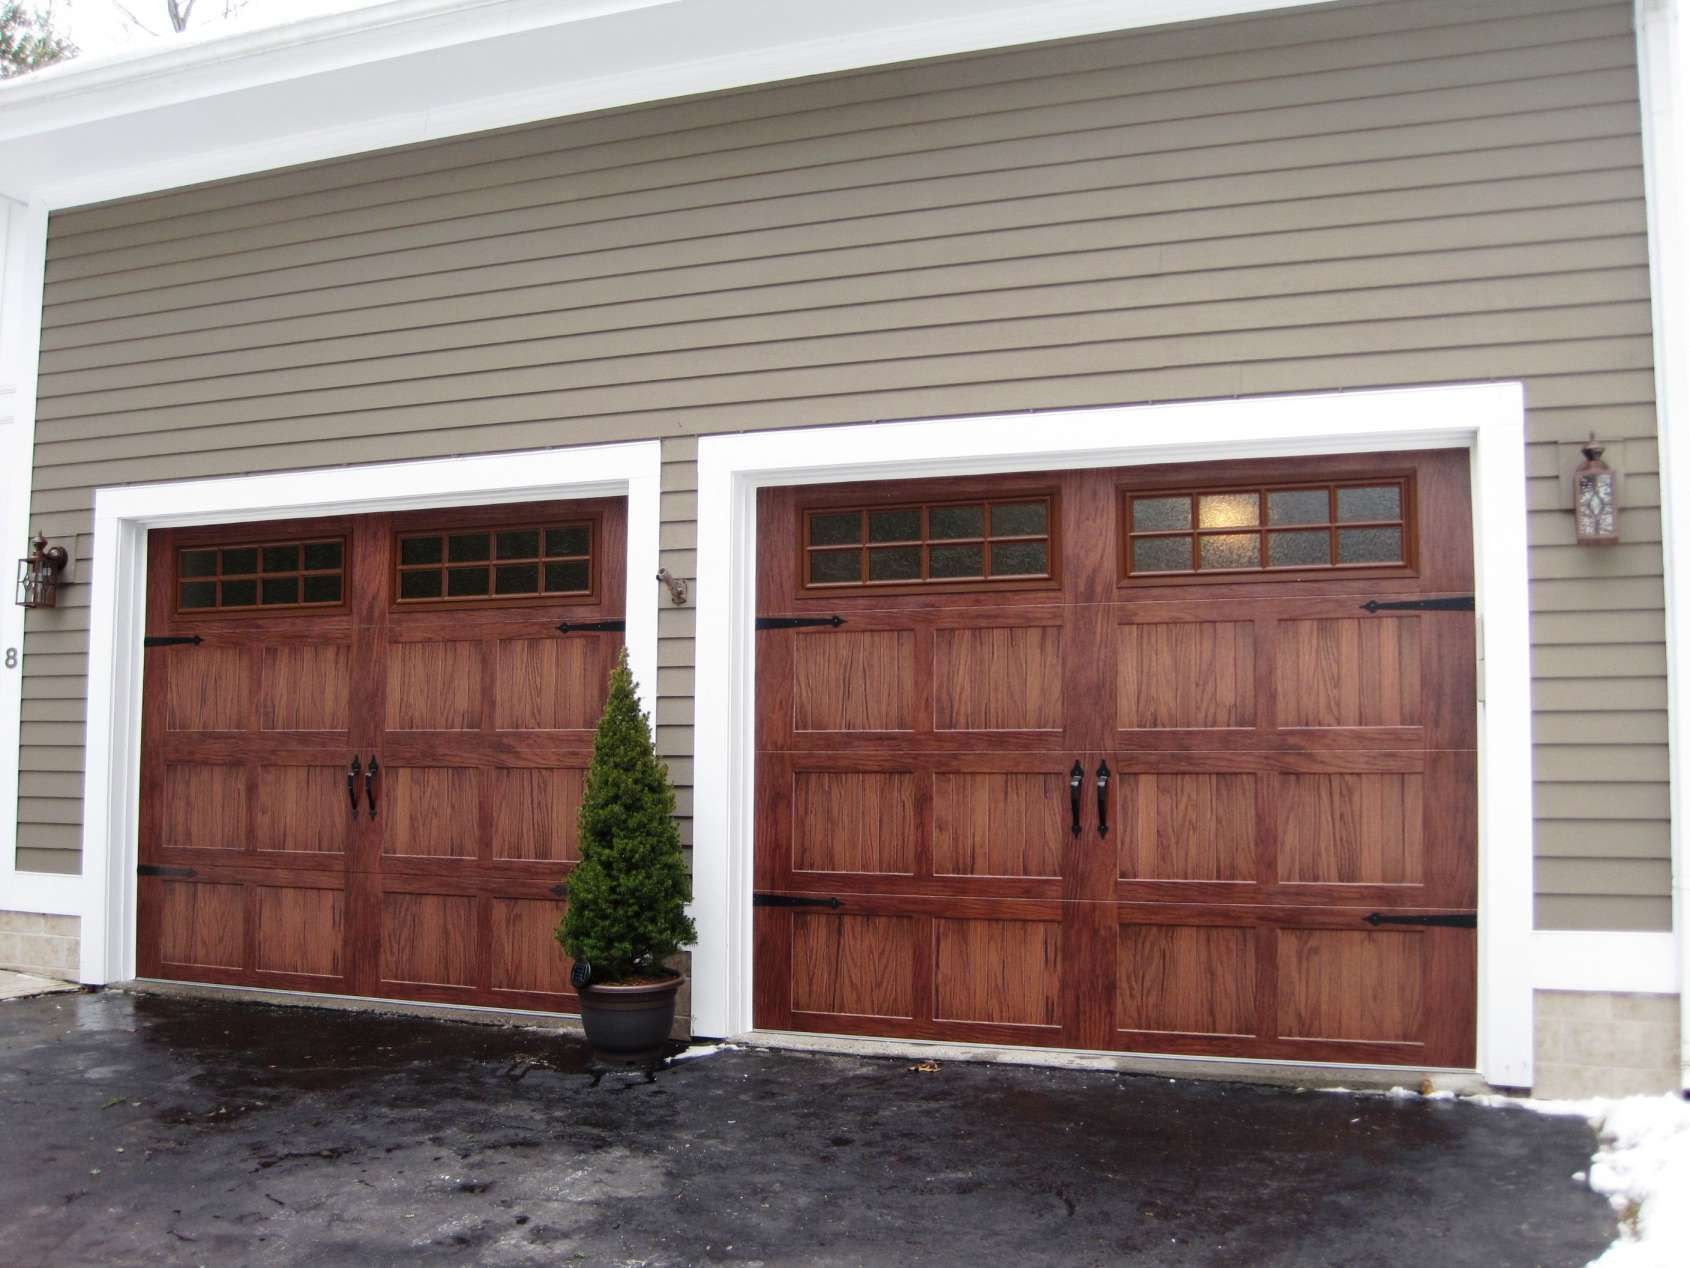 11 Amazing Wood Grain Steel Garage Doors Photos Garage Door Styles Garage Doors Vinyl Garage Doors